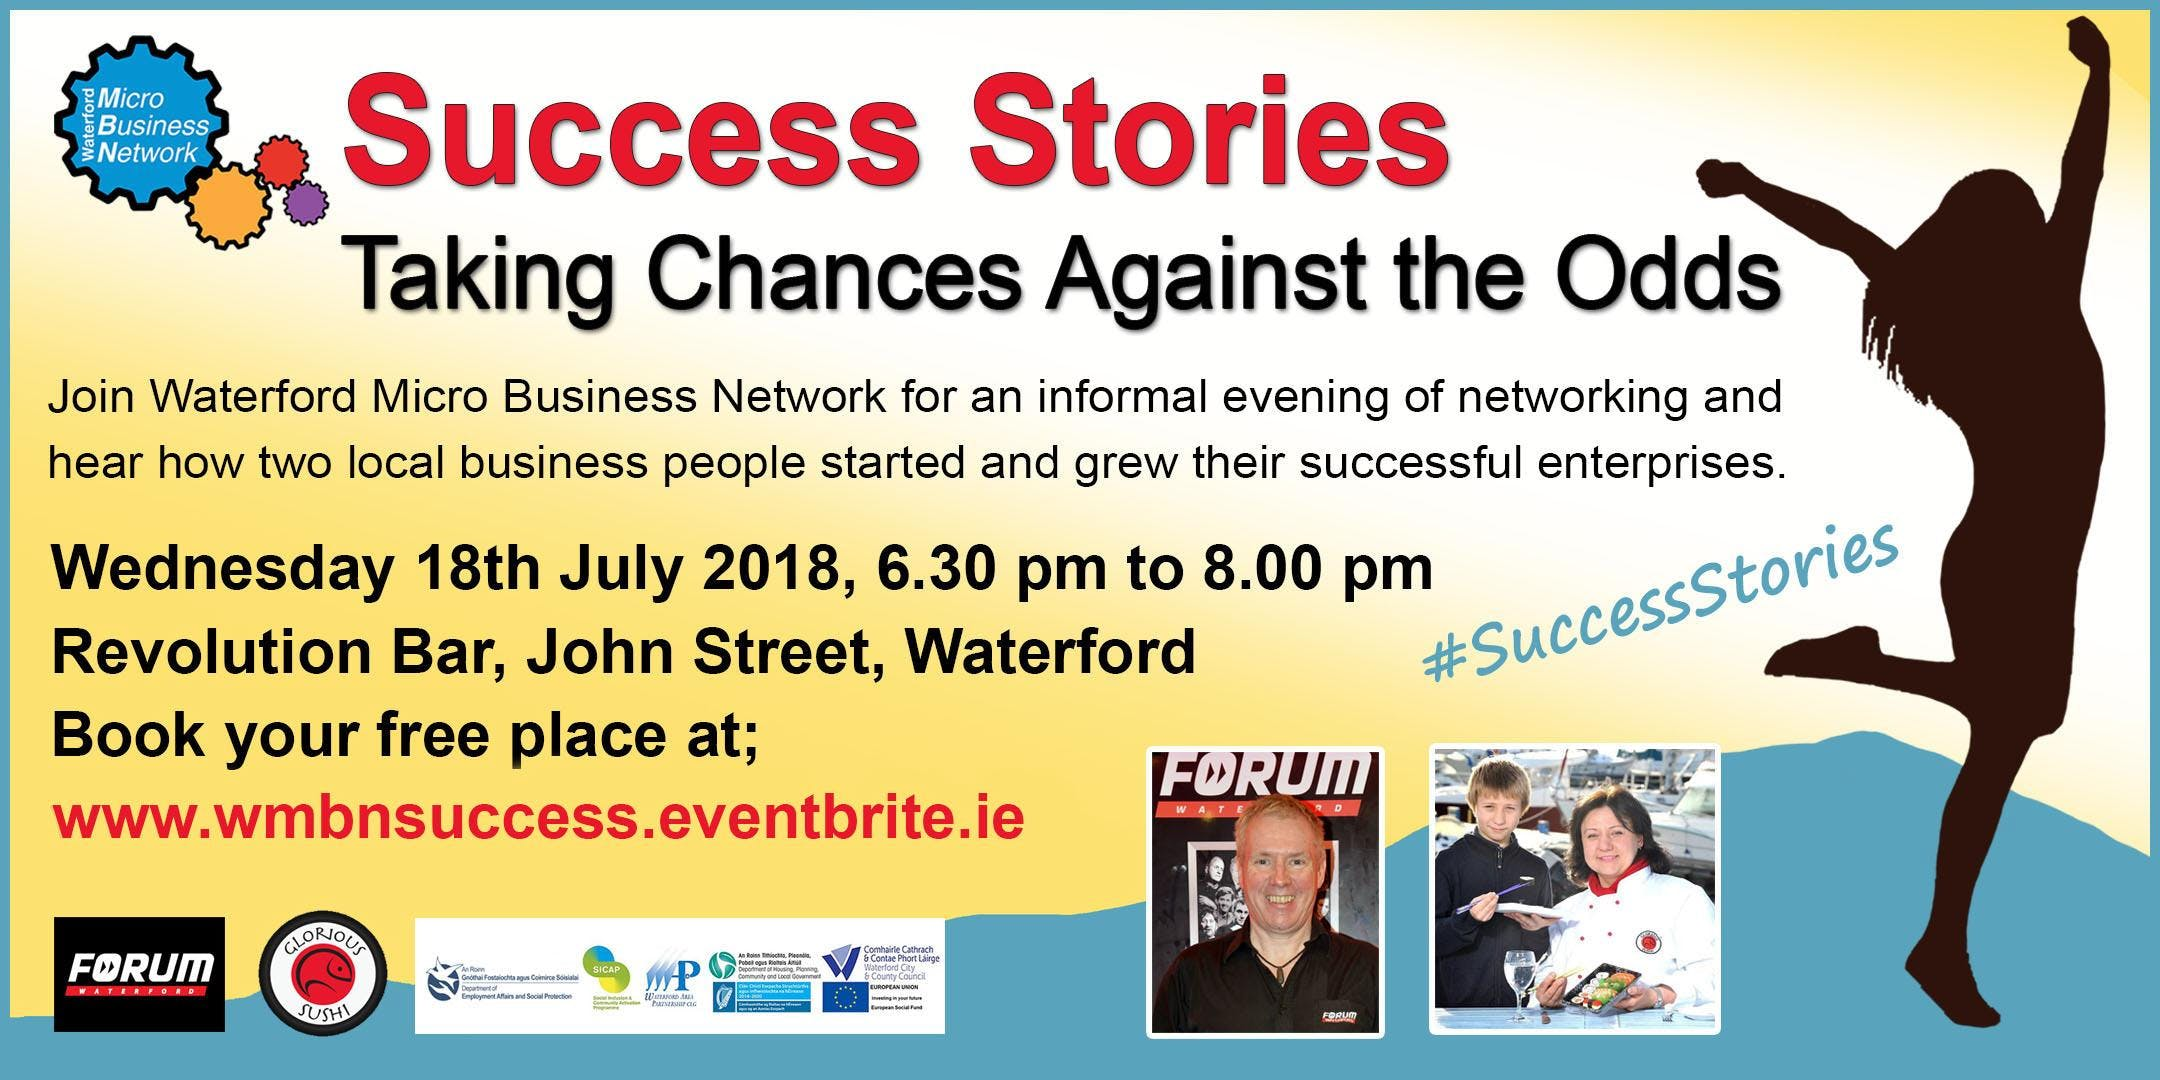 Success Stories - Taking Chances Against the Odds